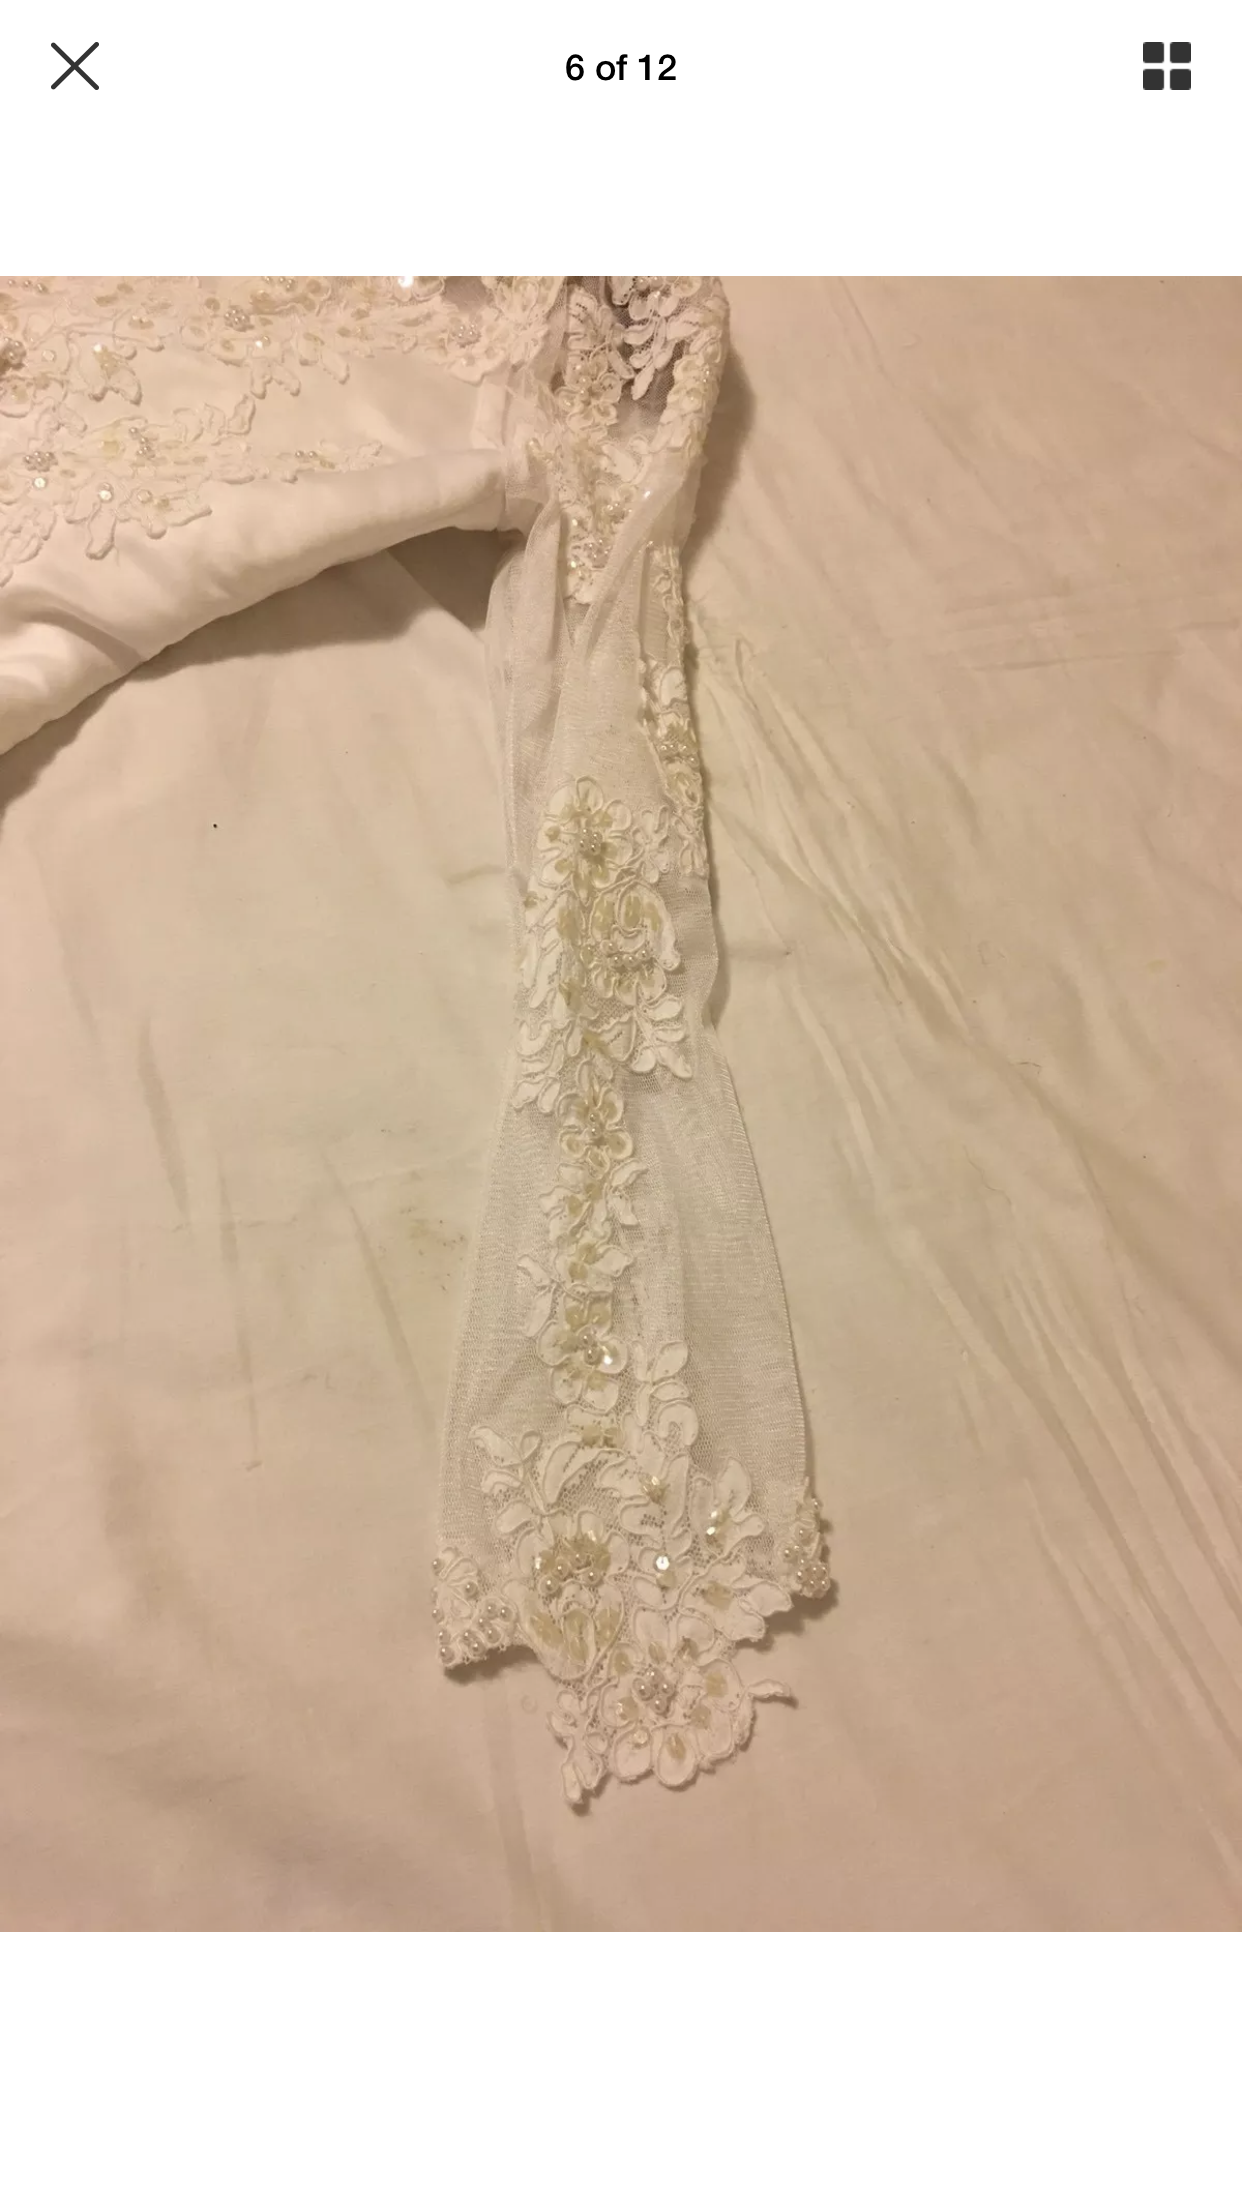 Unknown Possibly David's Bridal Attire With Pearl Beaded Tiara